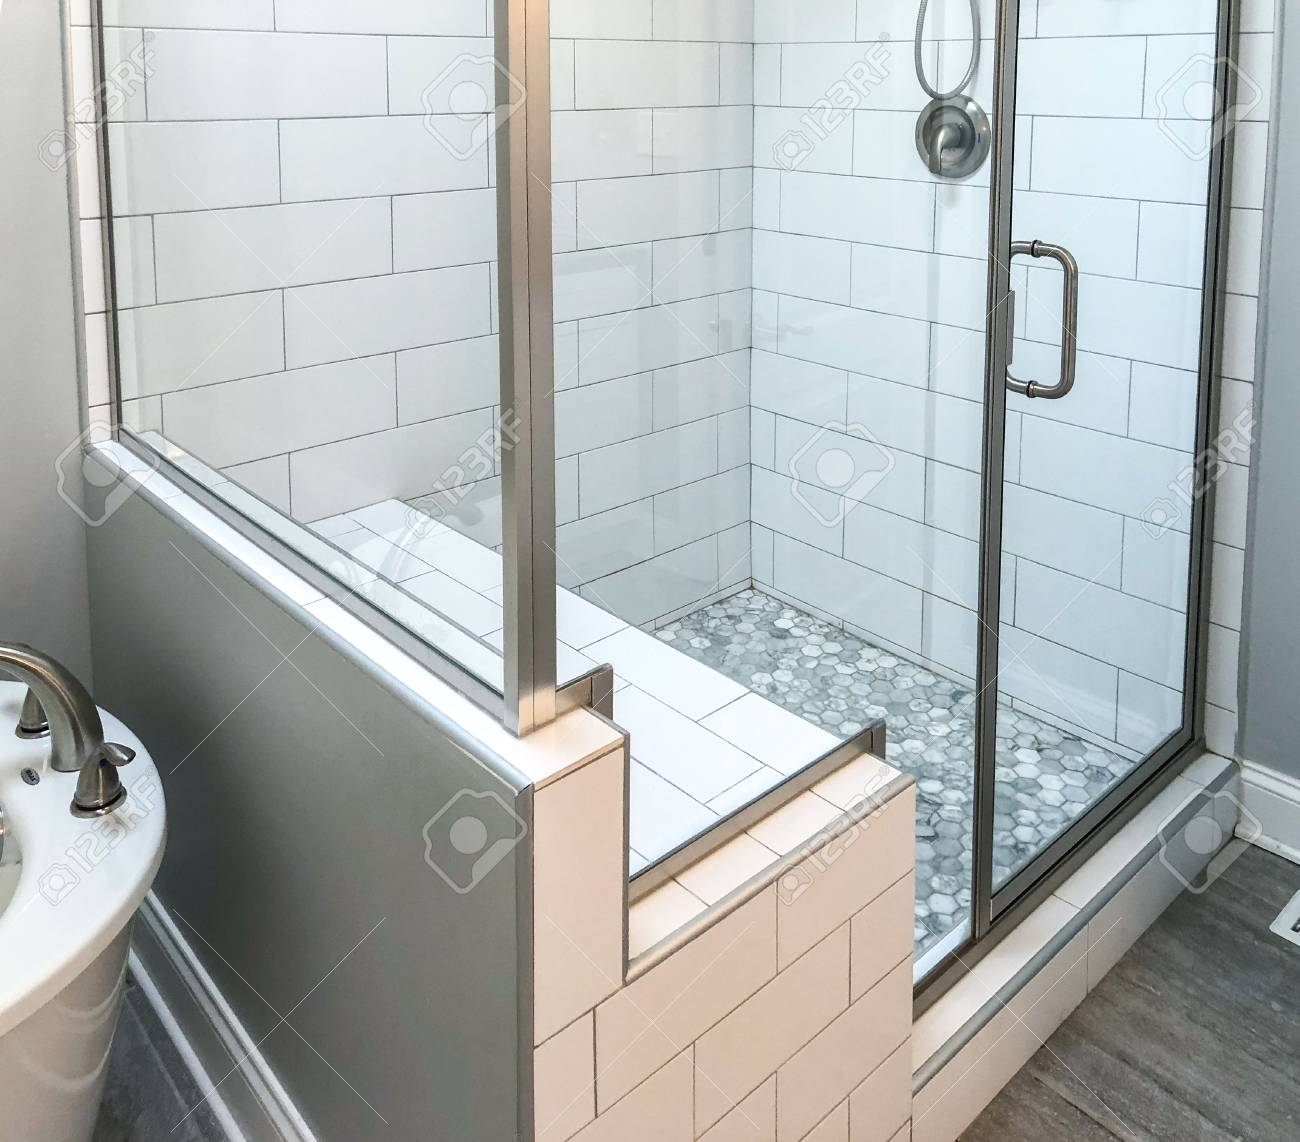 bathroom shower base with stone floor, white wall tiles